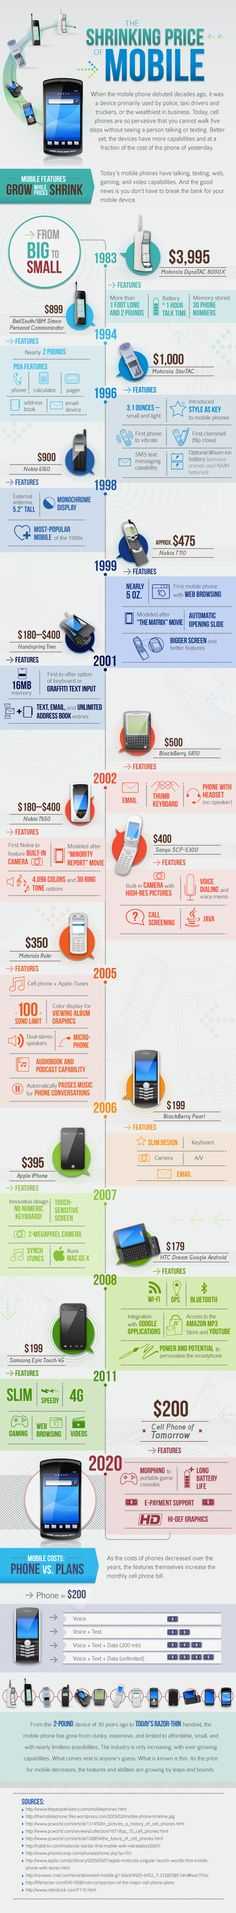 The Cellphone Chronicle